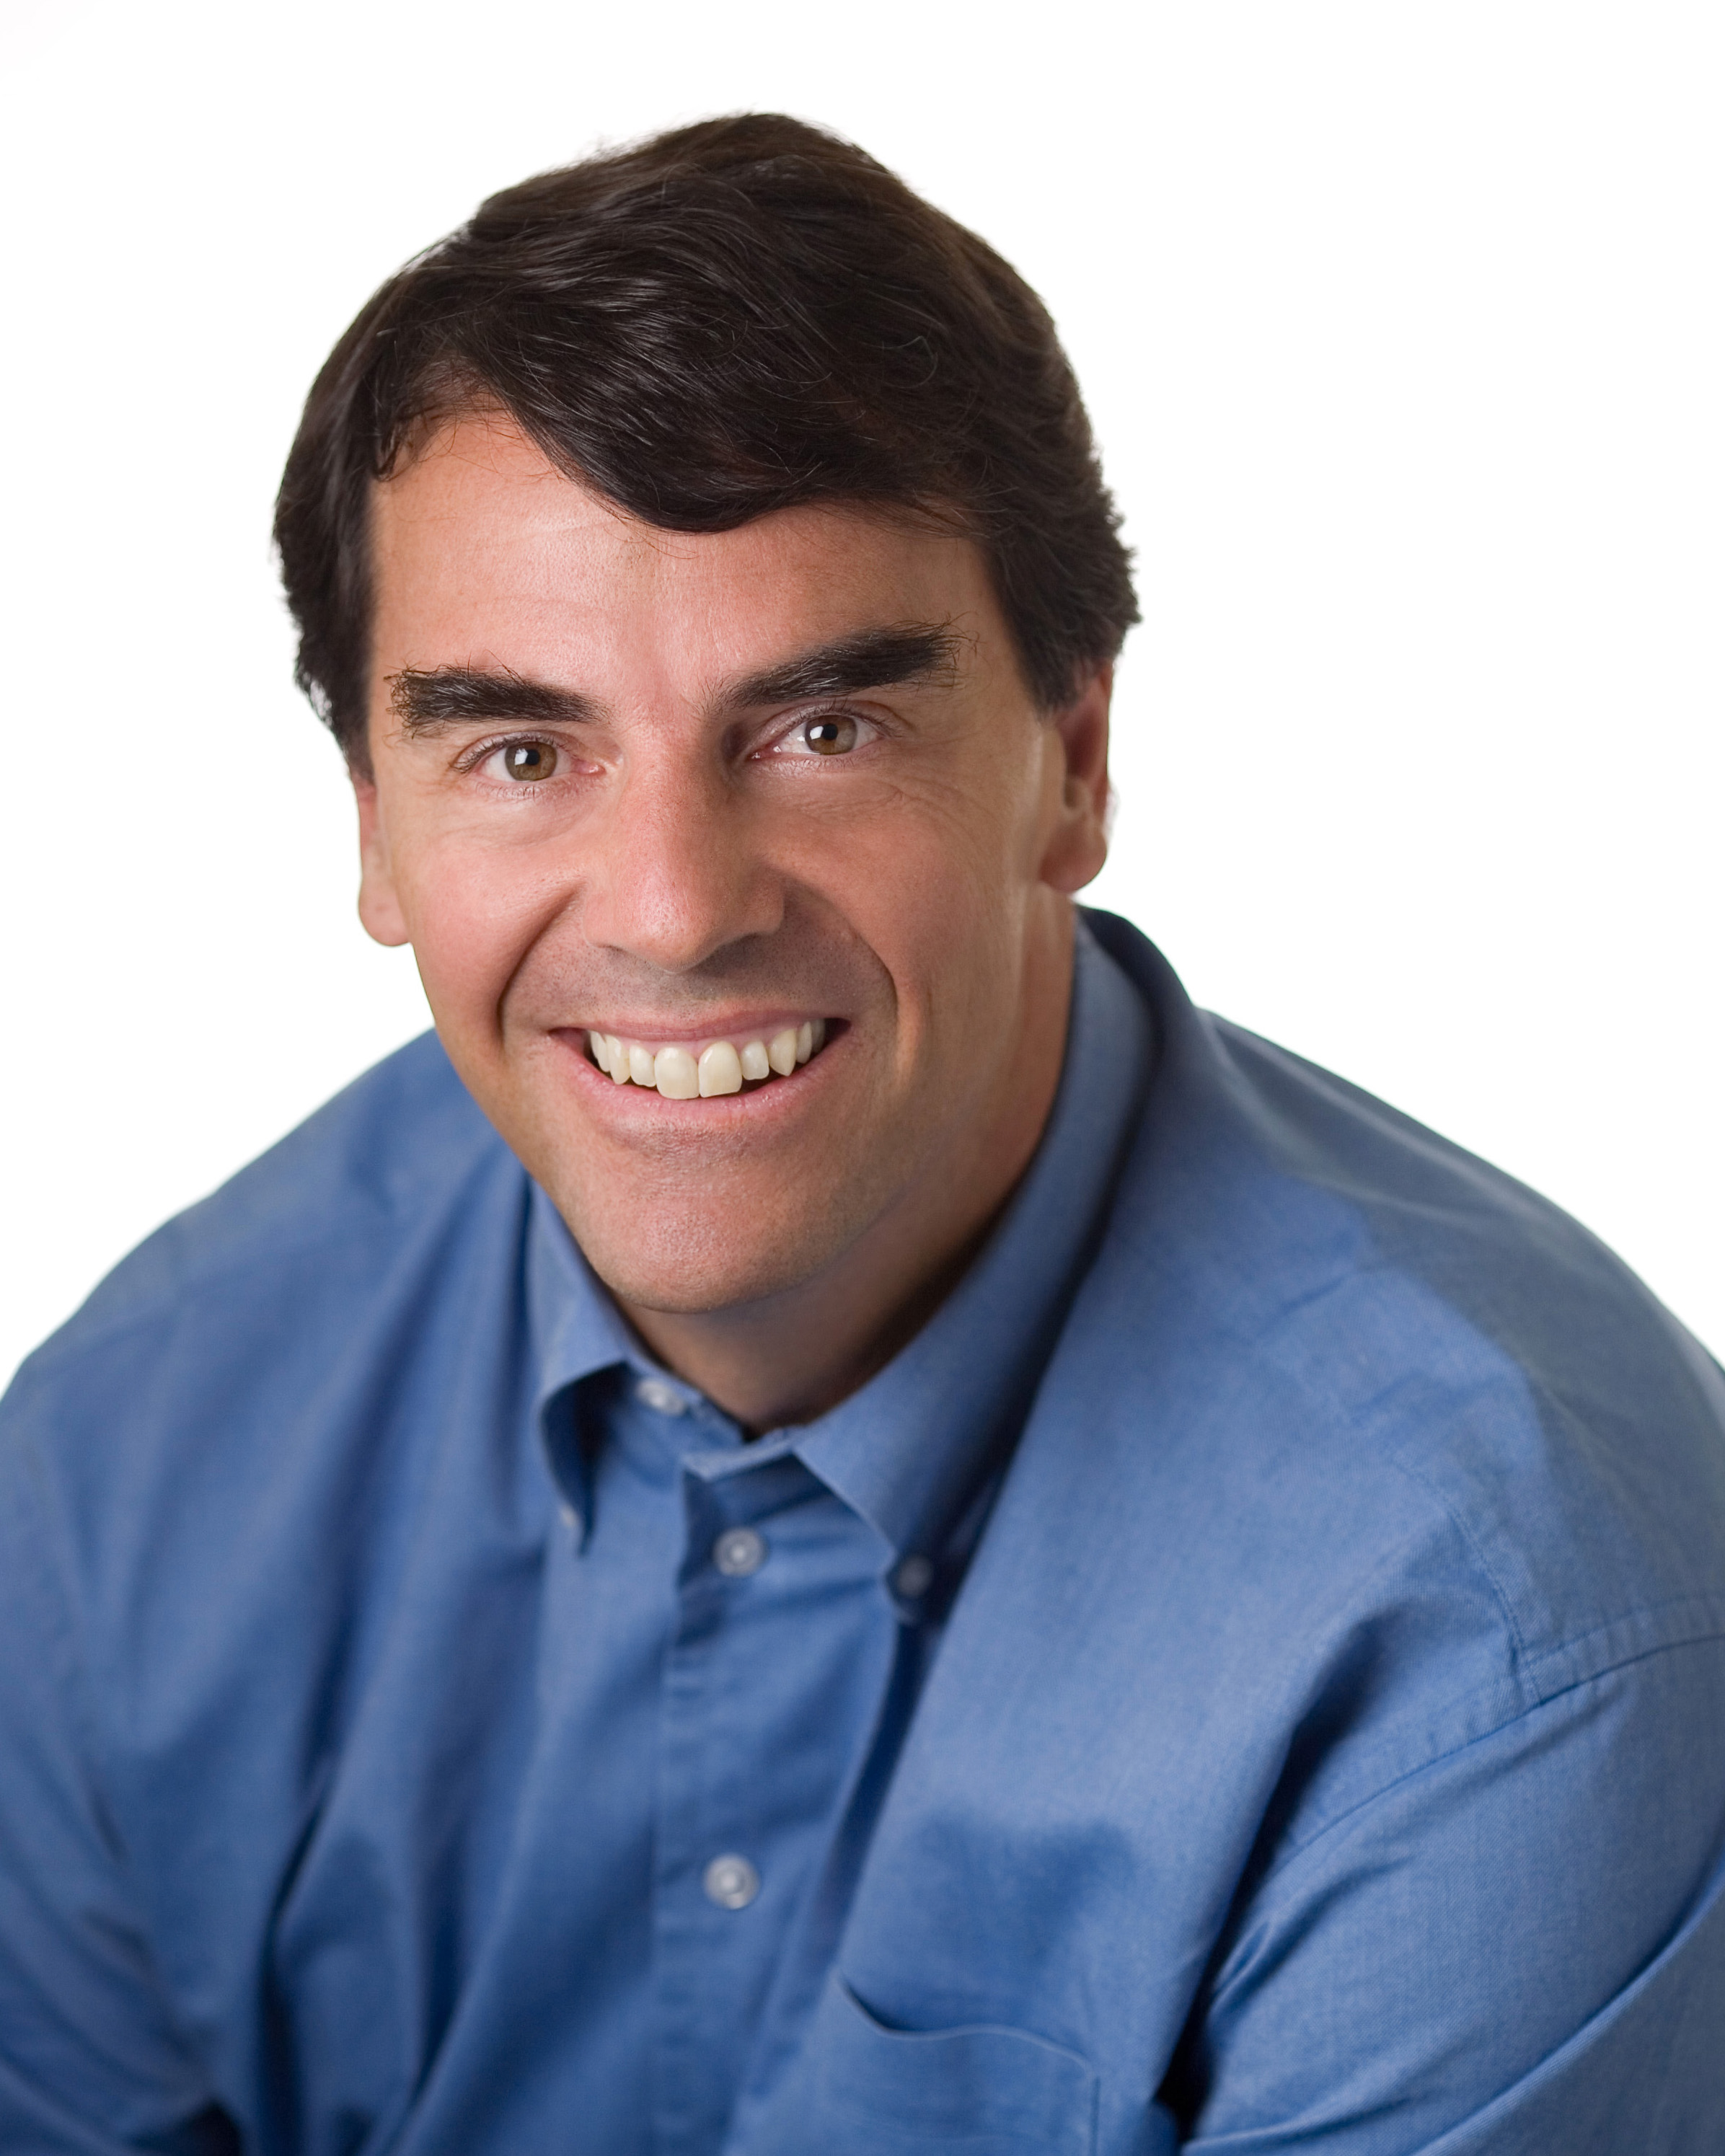 Tim Draper recruits tech superheroes to school the next generation of entrepreneurs